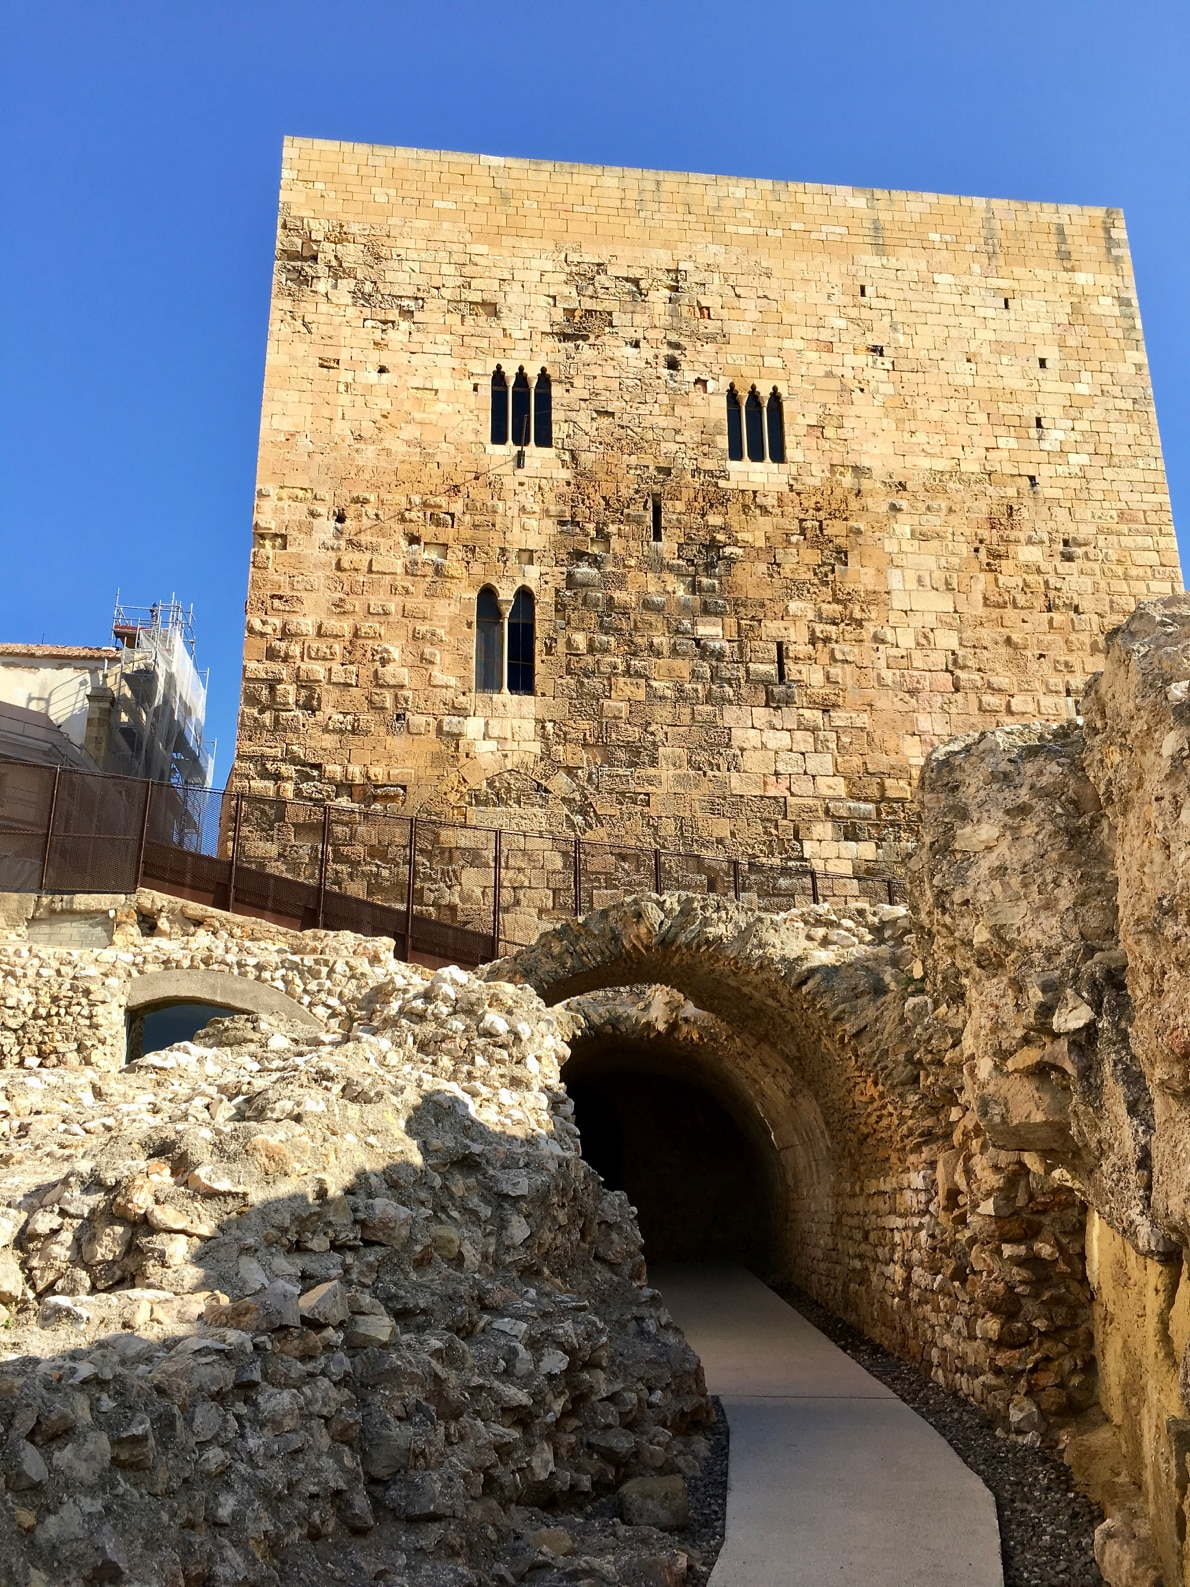 1st-century Roman tower sitting above the Circus in Tarragona